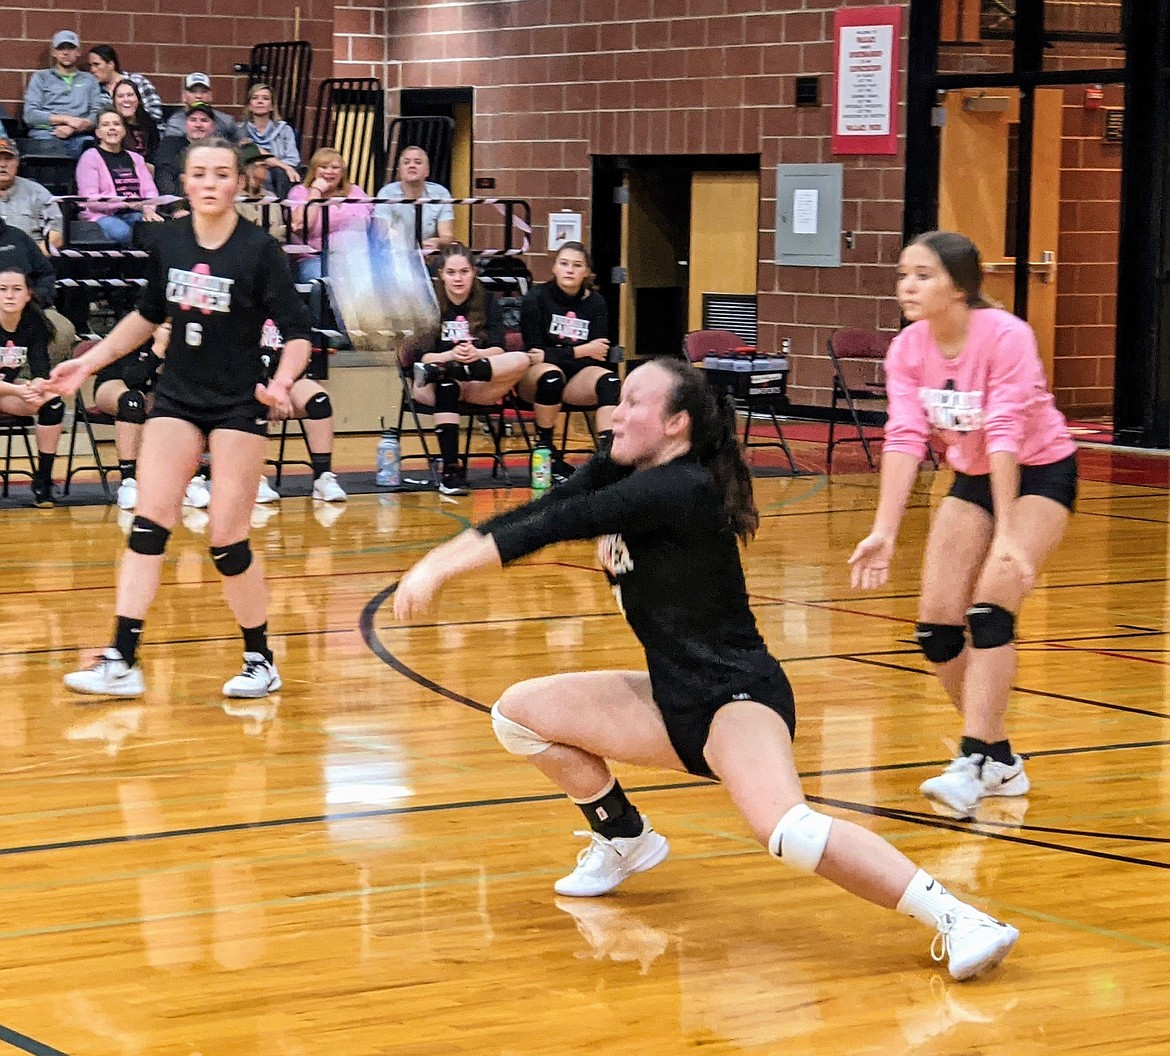 Miner Kendall Lohr Digs out a Wildcat hit during Dig Pink at WHS. The event is an annual cancer fundraiser between the Wallace and Kellogg volleyball teams.